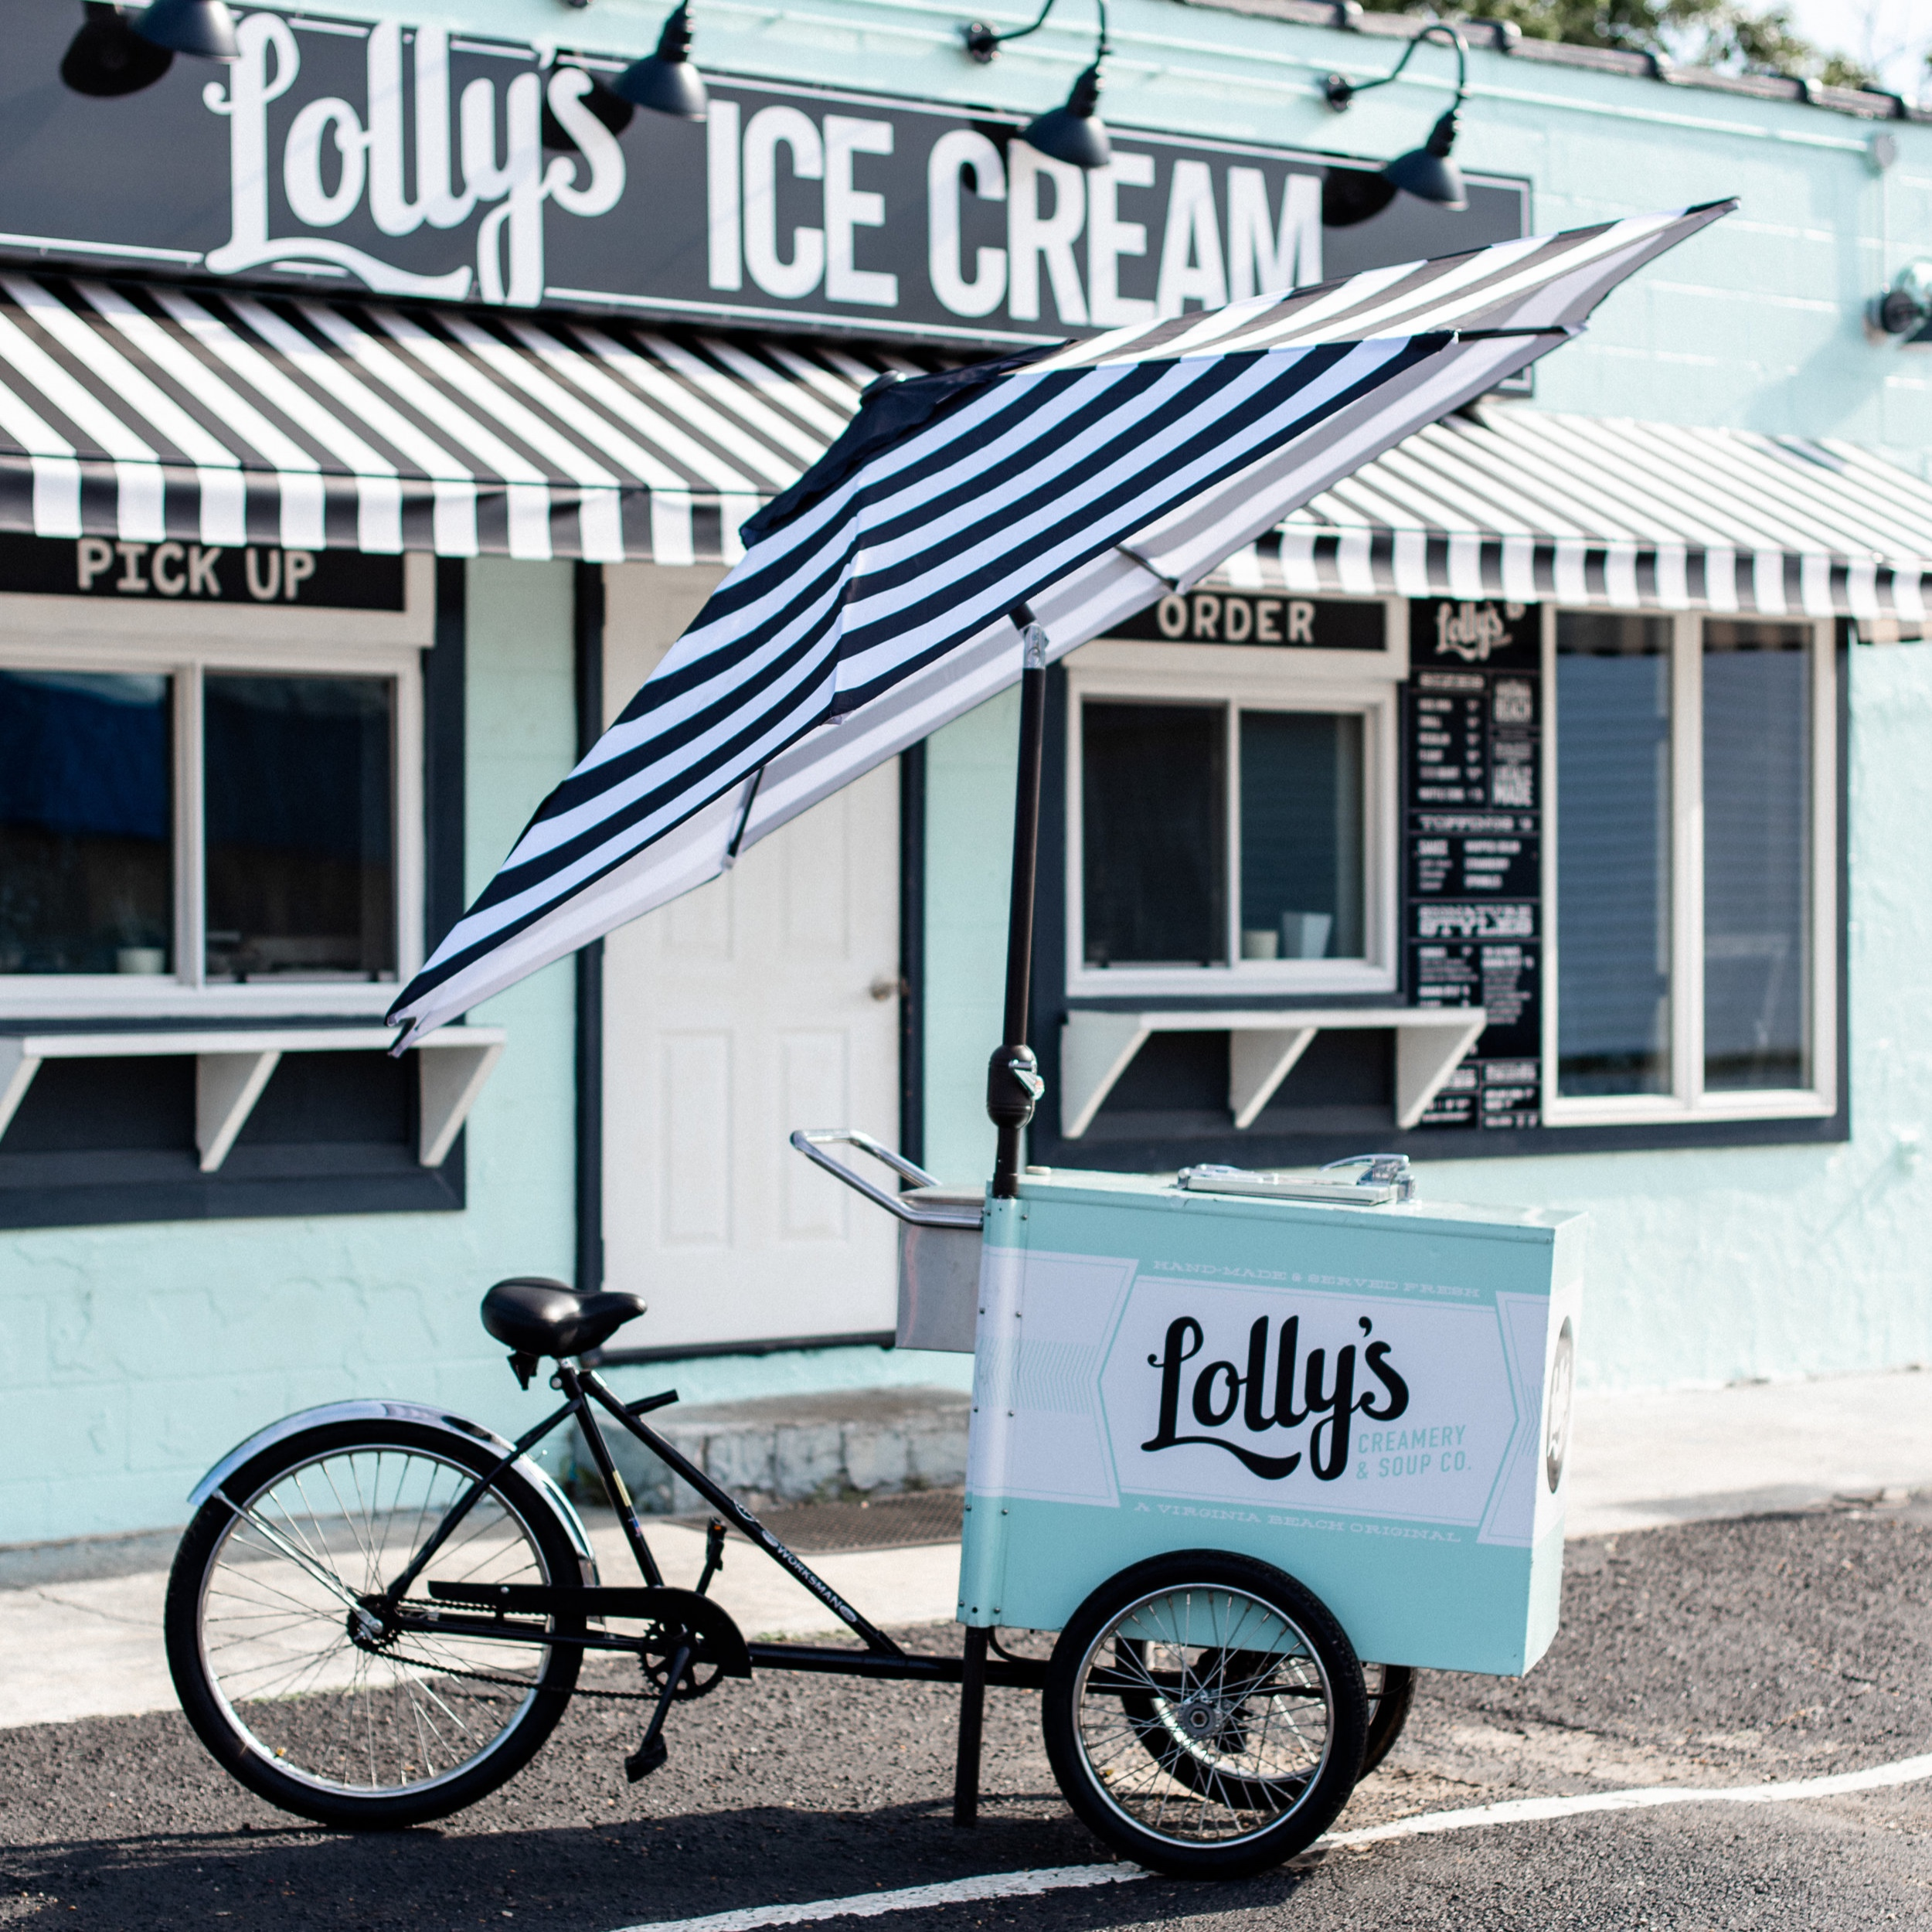 Joy Bike - Lolly's Joy Bike bring smiles with the nostalgic memories of ice cream served from vintage ice cream carts and bikes! In fact, Lolly's custom Joy Bike is manufactured by the same company that has produced the Good Humor bikes of yesteryear that so many of our patrons refer to as a wonderful memory from their childhoods.